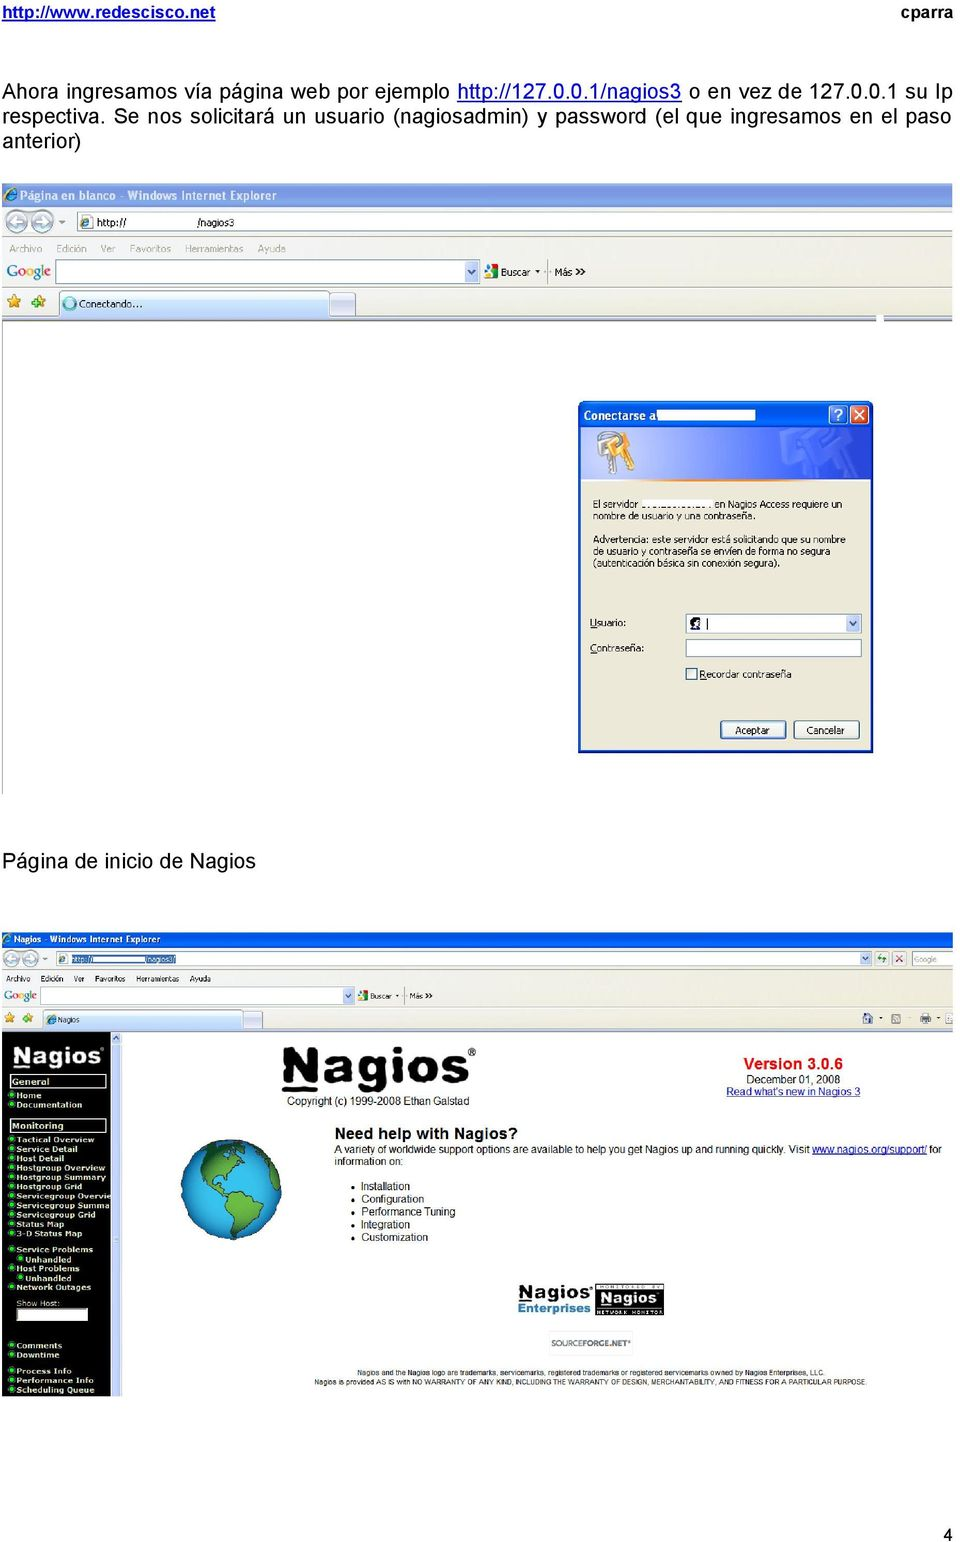 Se nos solicitará un usuario (nagiosadmin) y password (el